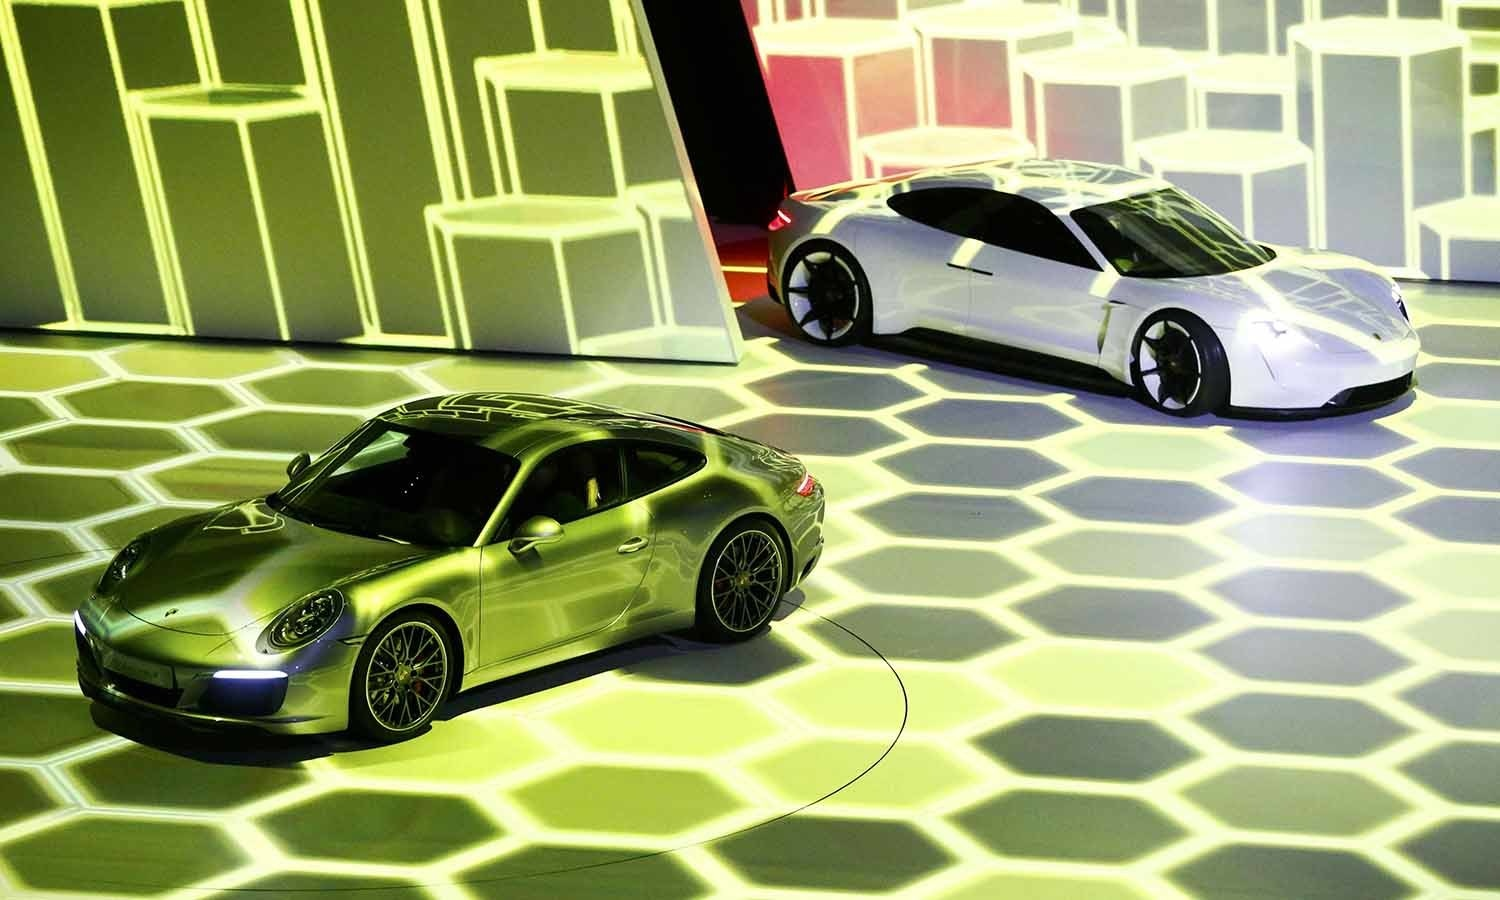 The new Porsche 911 Carrera S (L) and concept car Mission E are presented during the Volkswagen group night ahead of the Frankfurt Motor Show (IAA). ─ Reuters